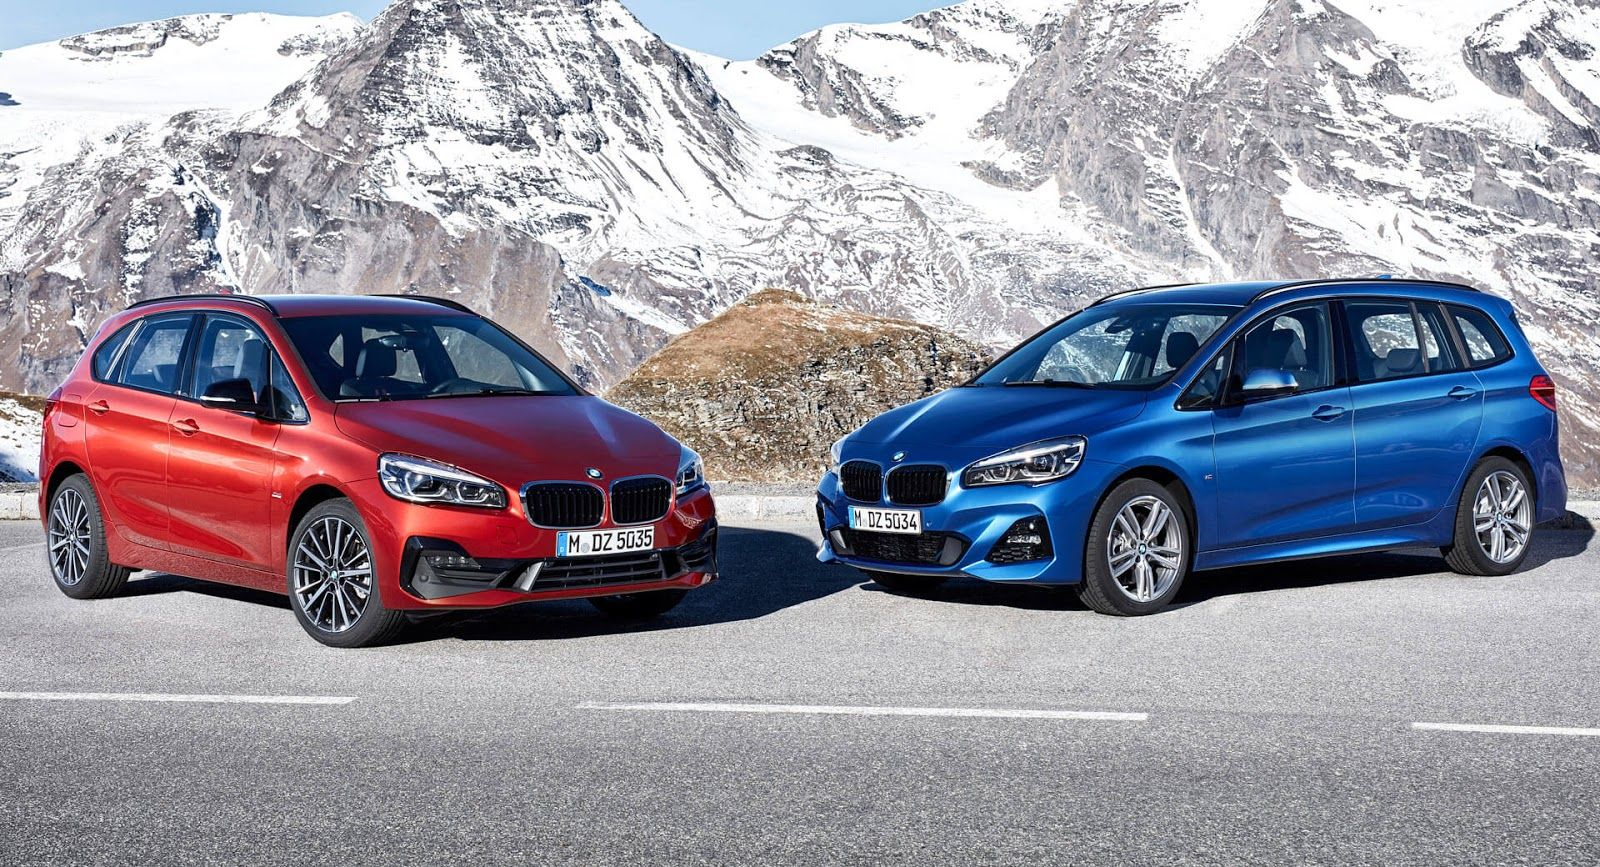 Facelifted Bmw 2 Series Active And Gran Tourer Unveiled Can You Tell What S Different Bmw Bmw 2 Bmw Series